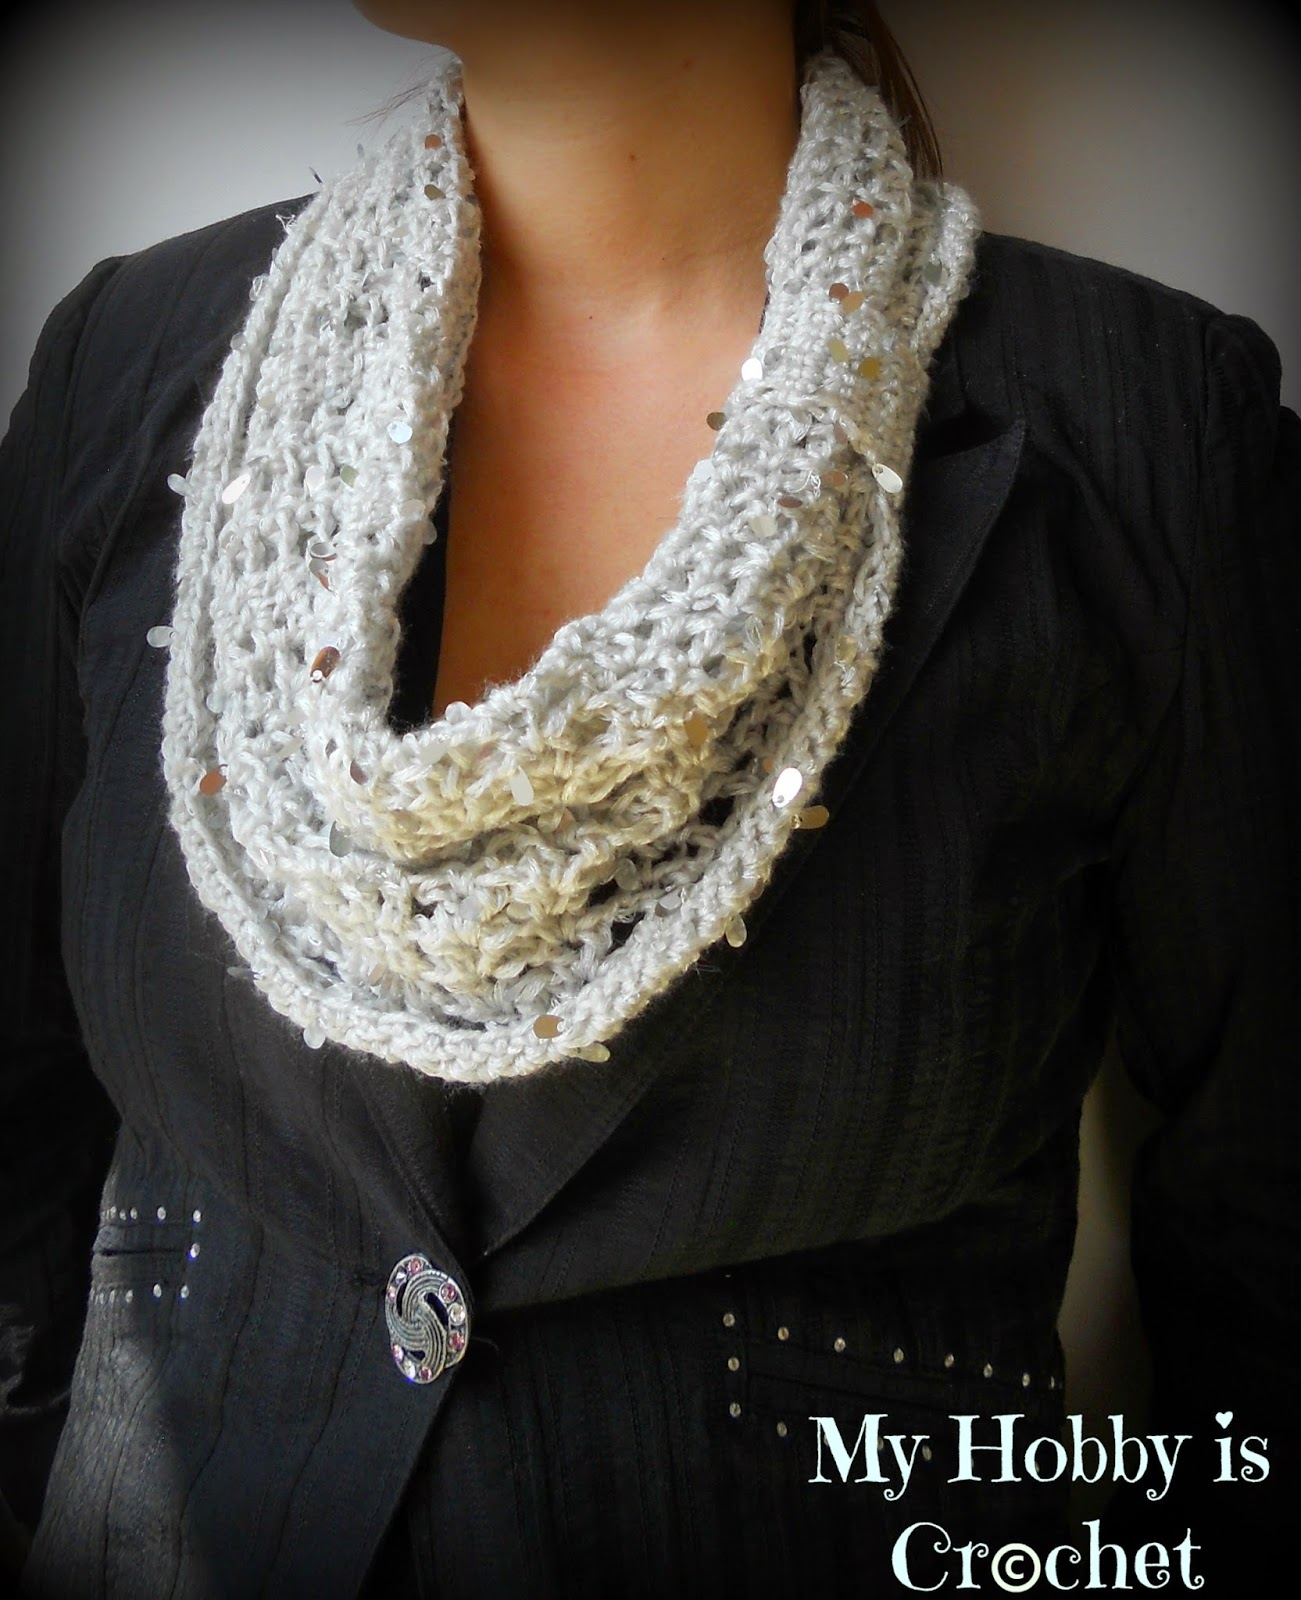 Free Crochet Pattern For A Cowl : My Hobby Is Crochet: Swanky Glam Cowl - Free Crochet ...